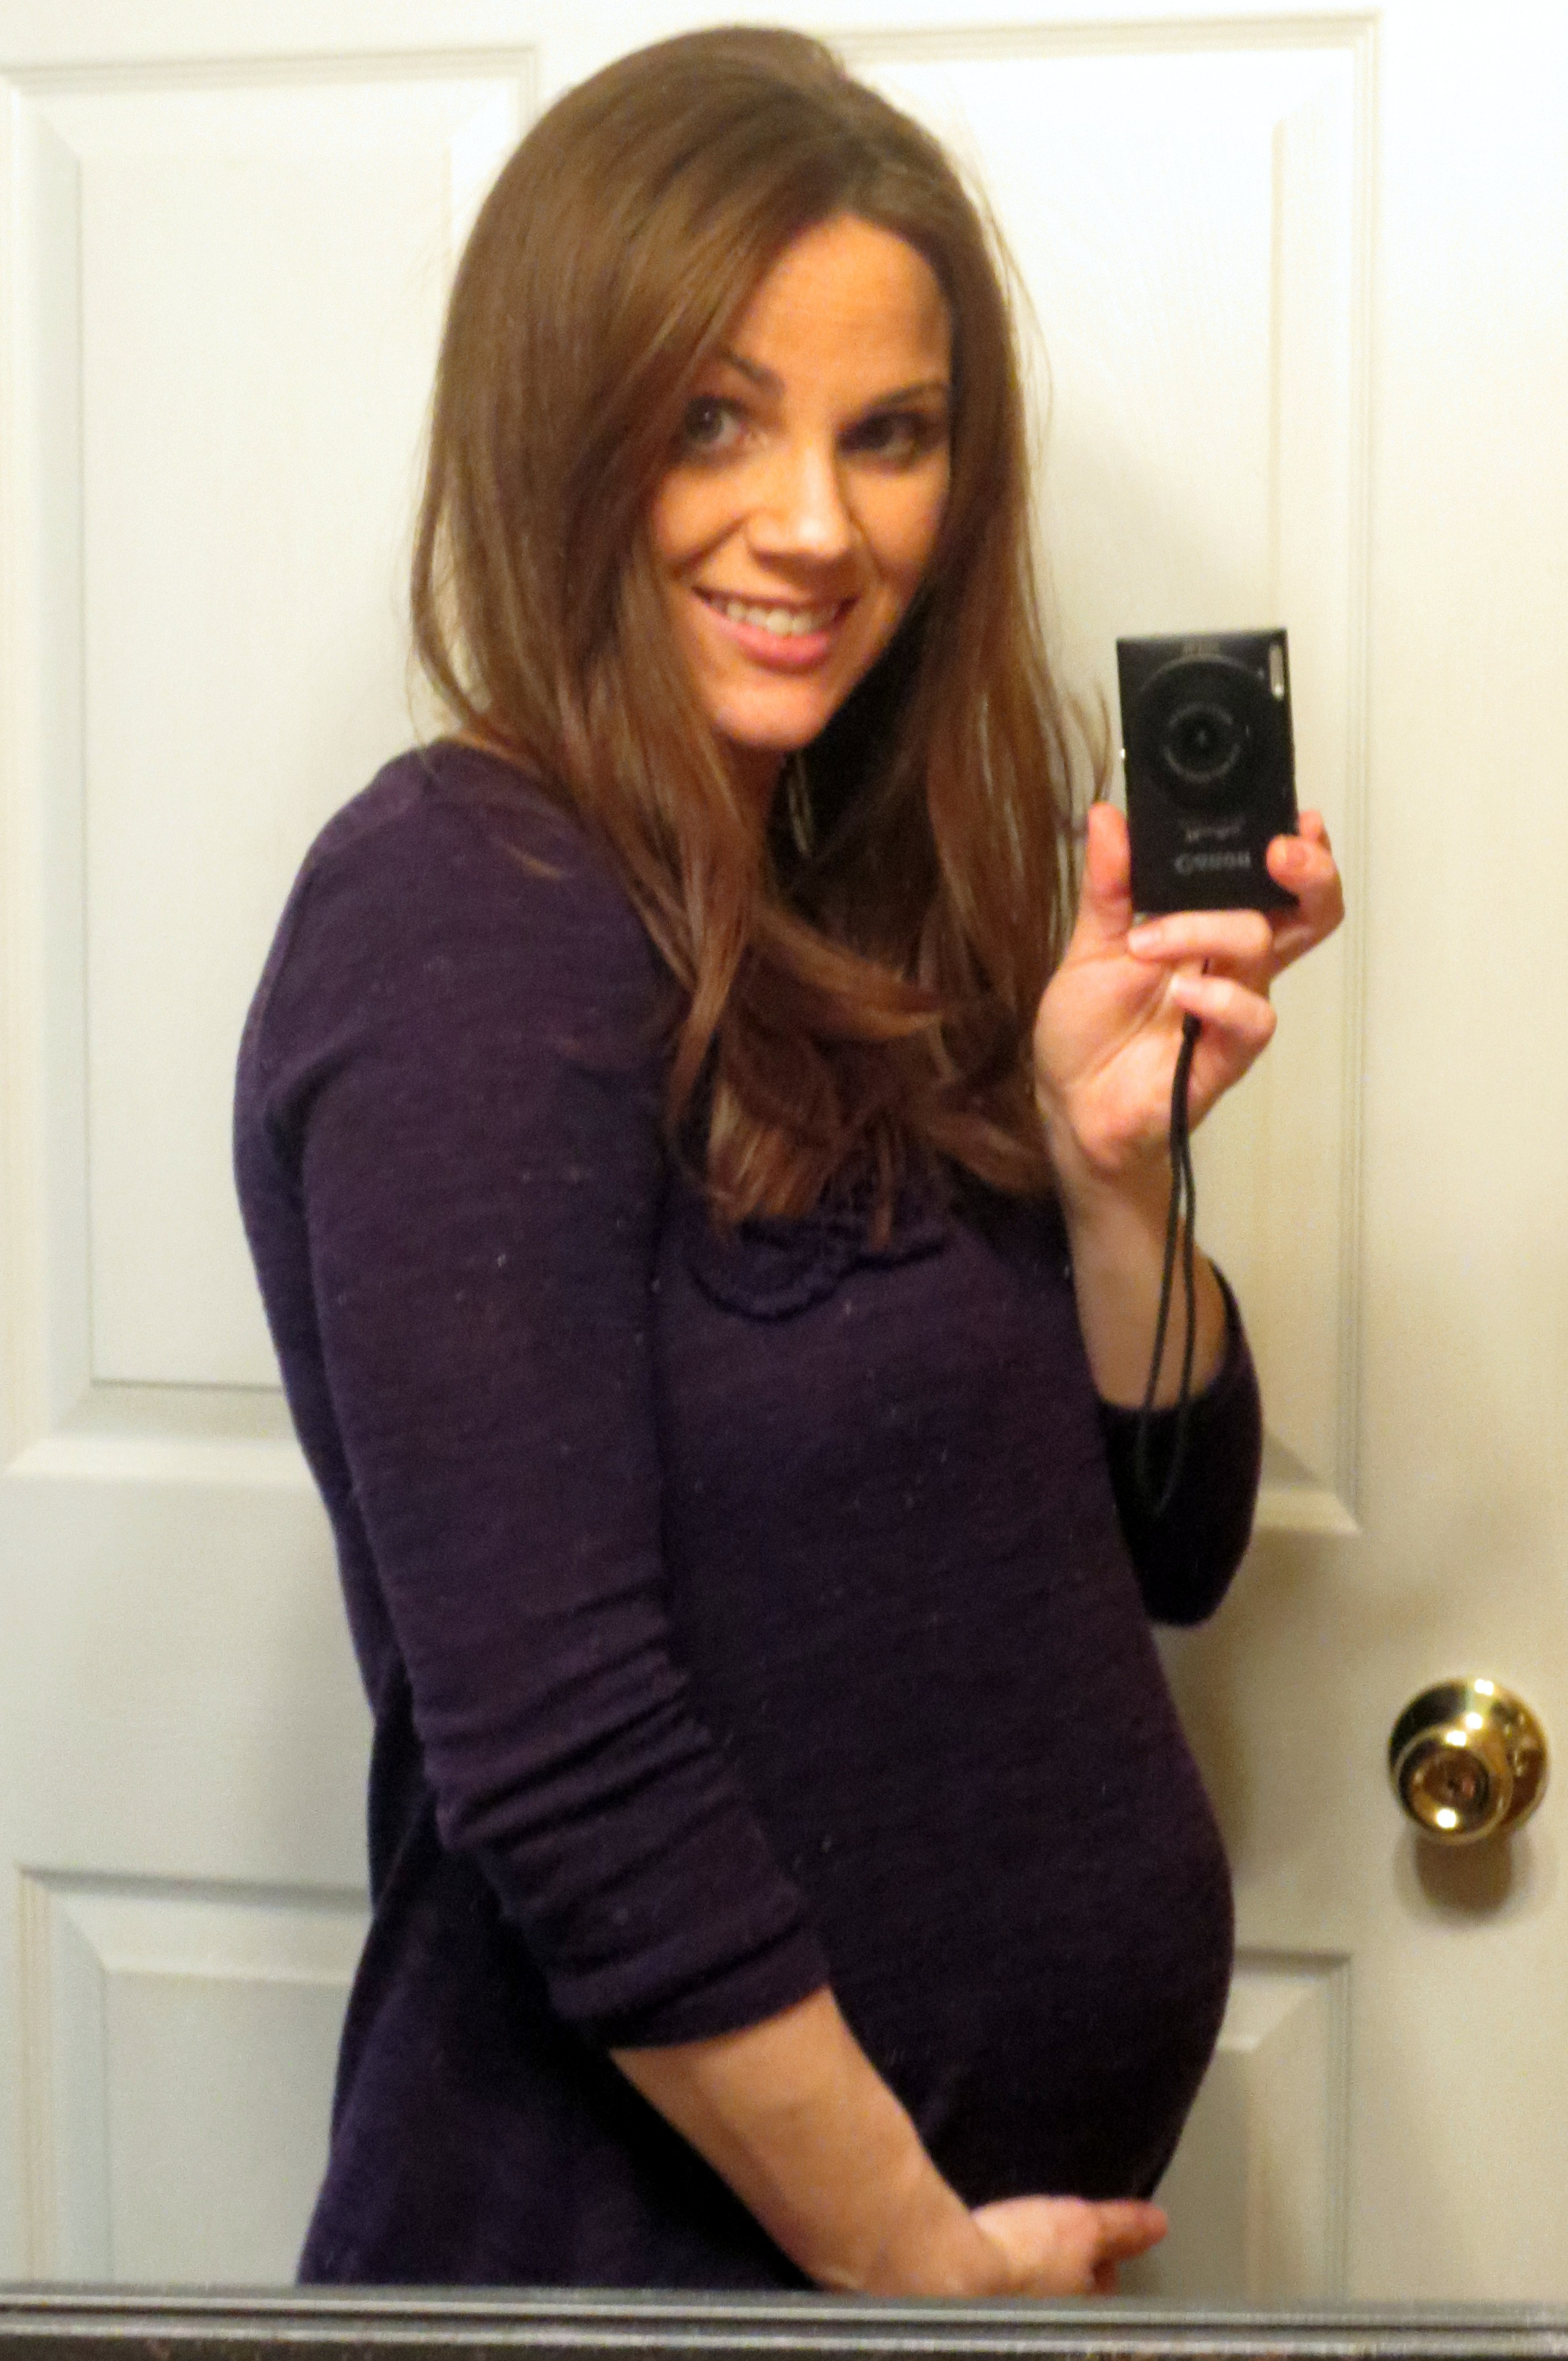 20 Weeks Pregnant with Twins